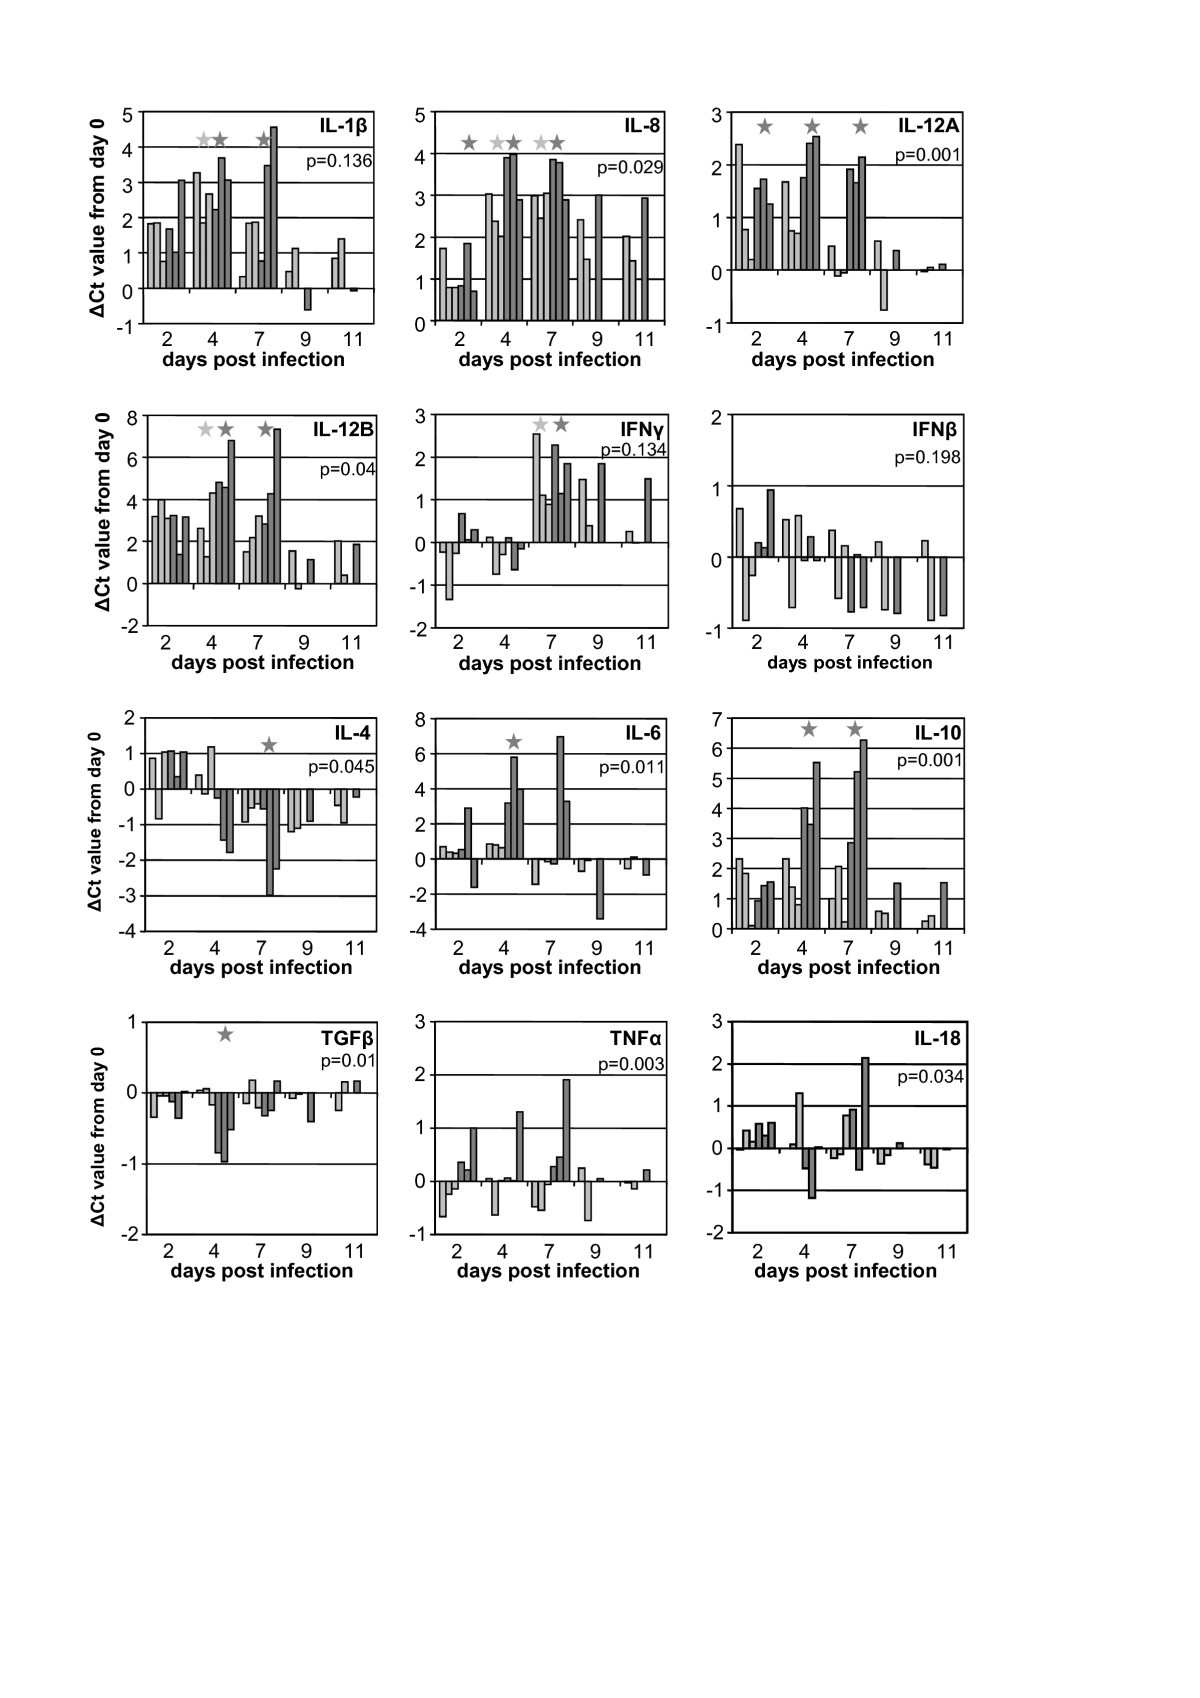 http://static-content.springer.com/image/art%3A10.1186%2F1297-9716-43-71/MediaObjects/13567_2012_Article_195_Fig6_HTML.jpg